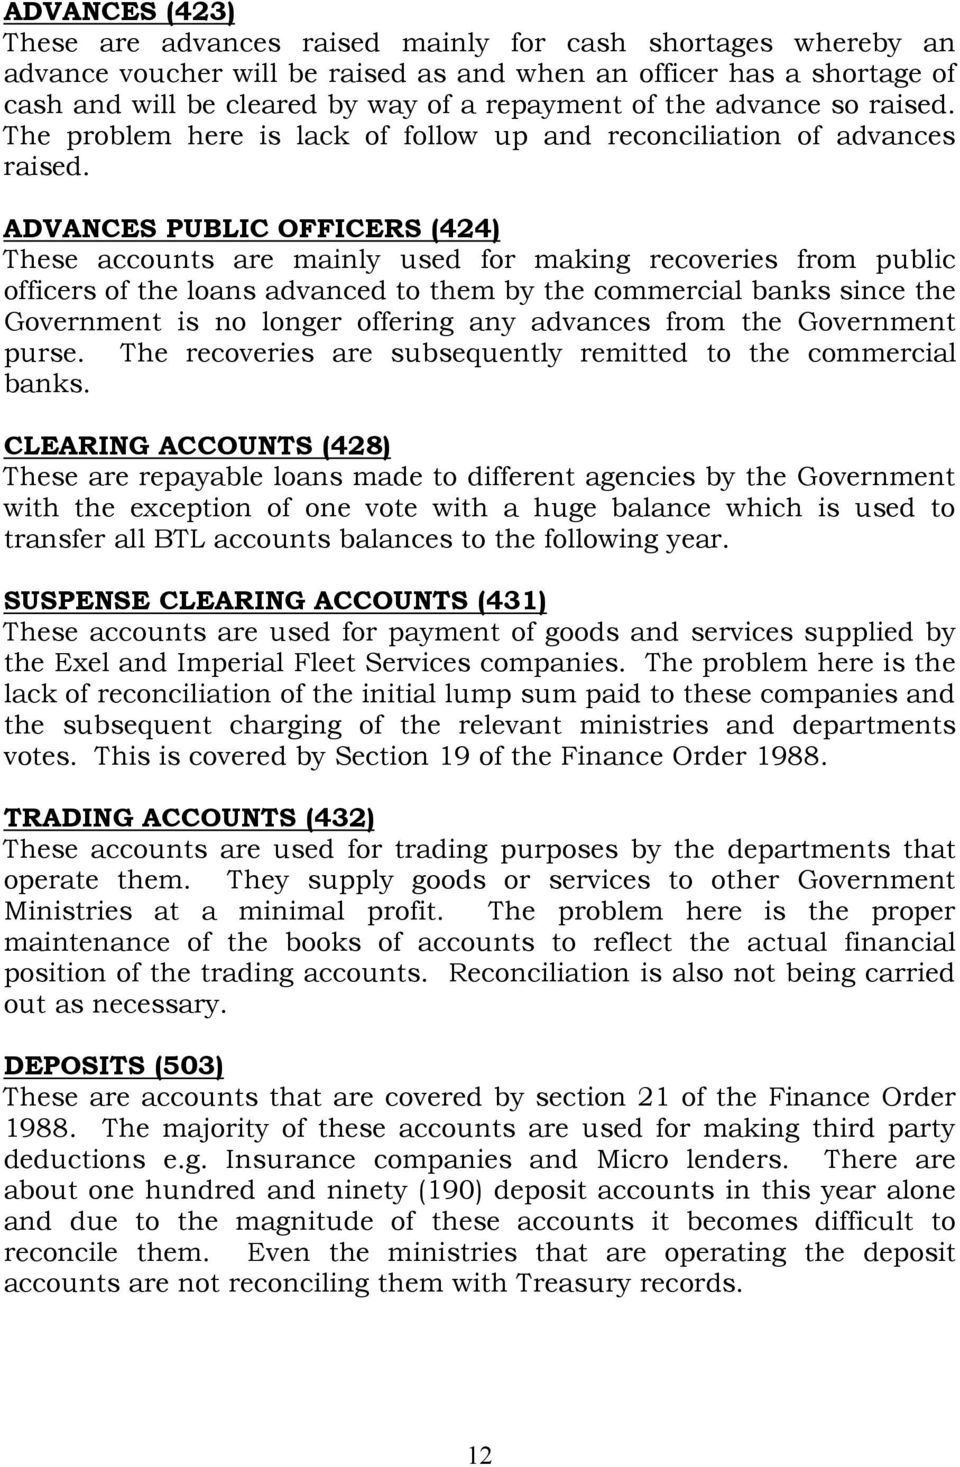 ADVANCES PUBLIC OFFICERS (424) These accounts are mainly used for making recoveries from public officers of the loans advanced to them by the commercial banks since the Government is no longer